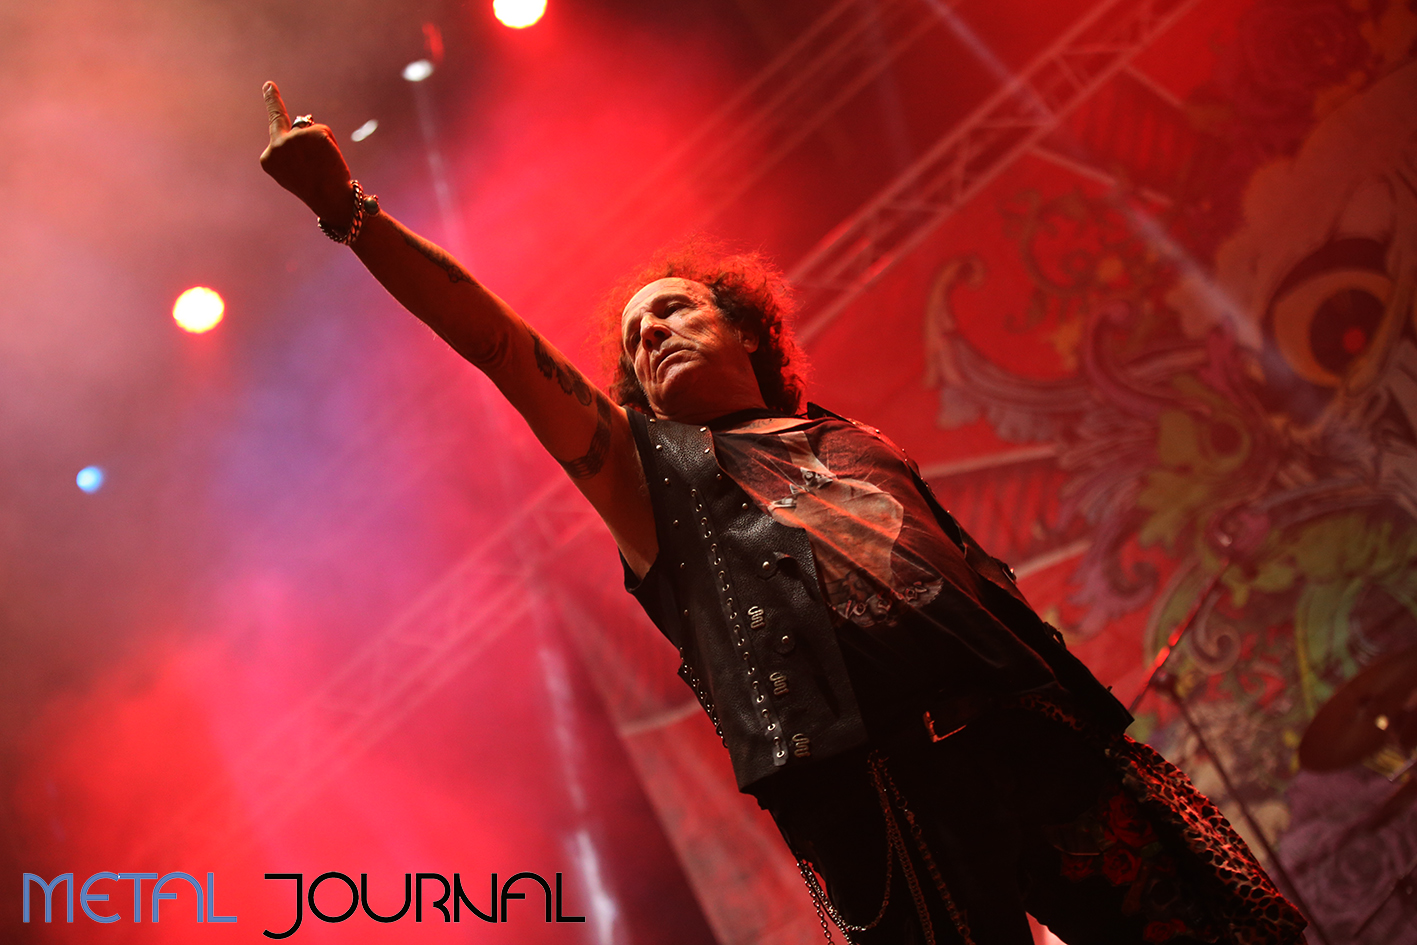 obus - leyendas del rock 2019 metal journal pic 1